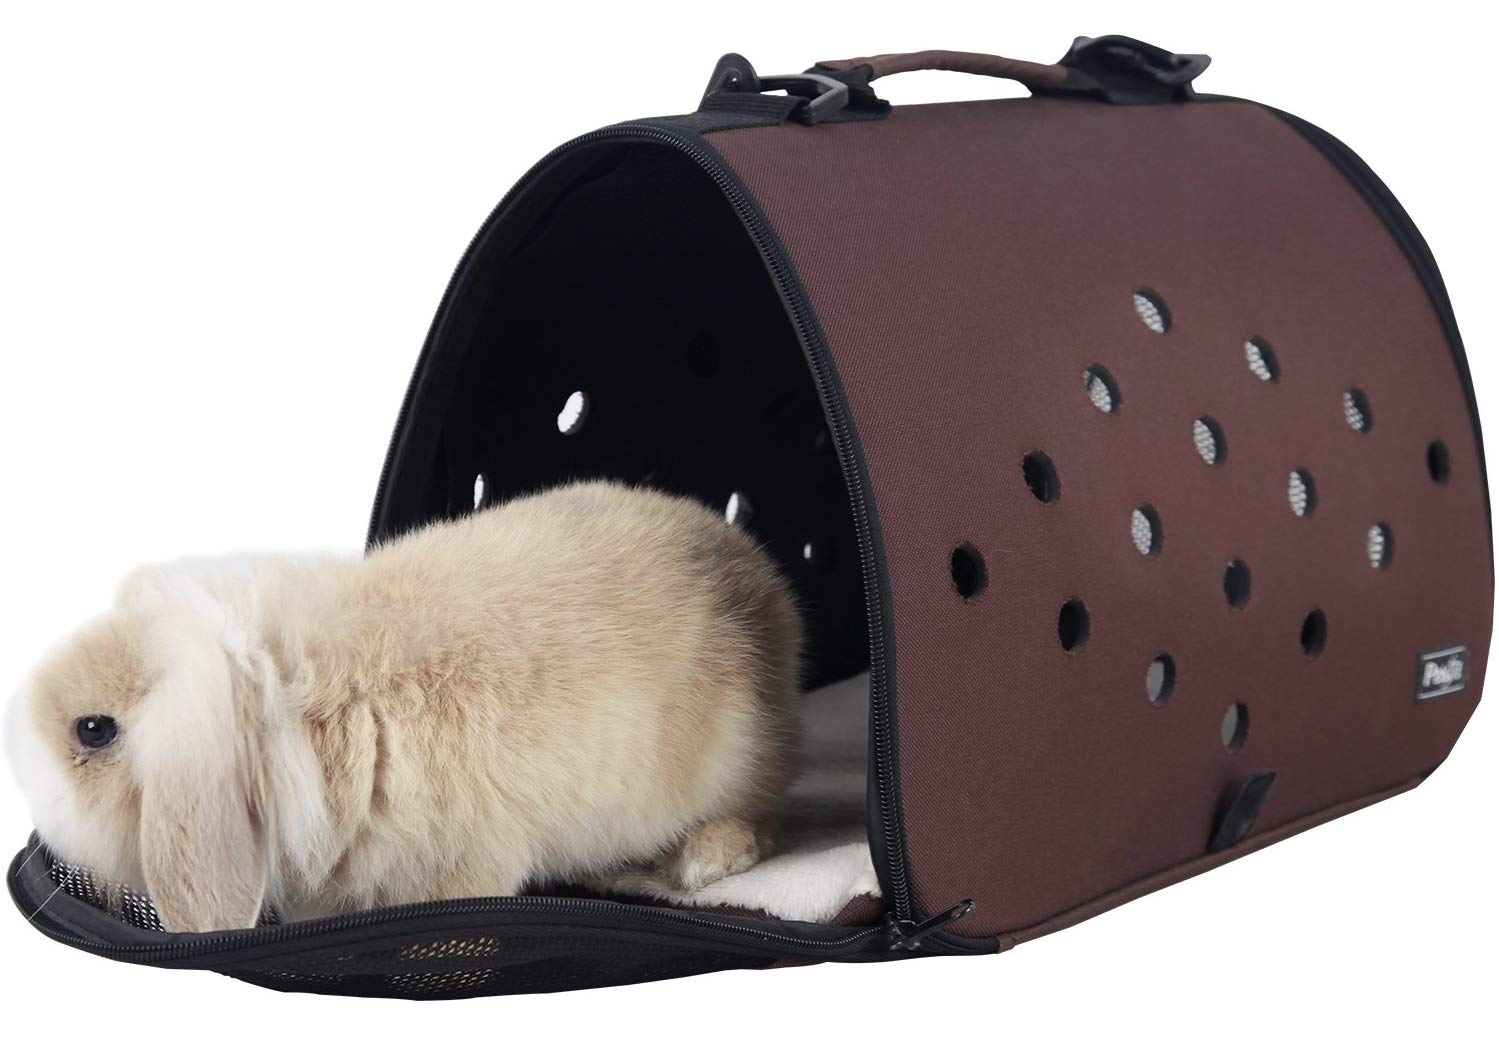 Petsfit 16 X 9 X 9 Inches Pet Carrier EVA, Soft-Sided Pet Carrier, Cat Carrier,Ferret Carrier,Bunny Carrier for Small Pet Only by Petsfit